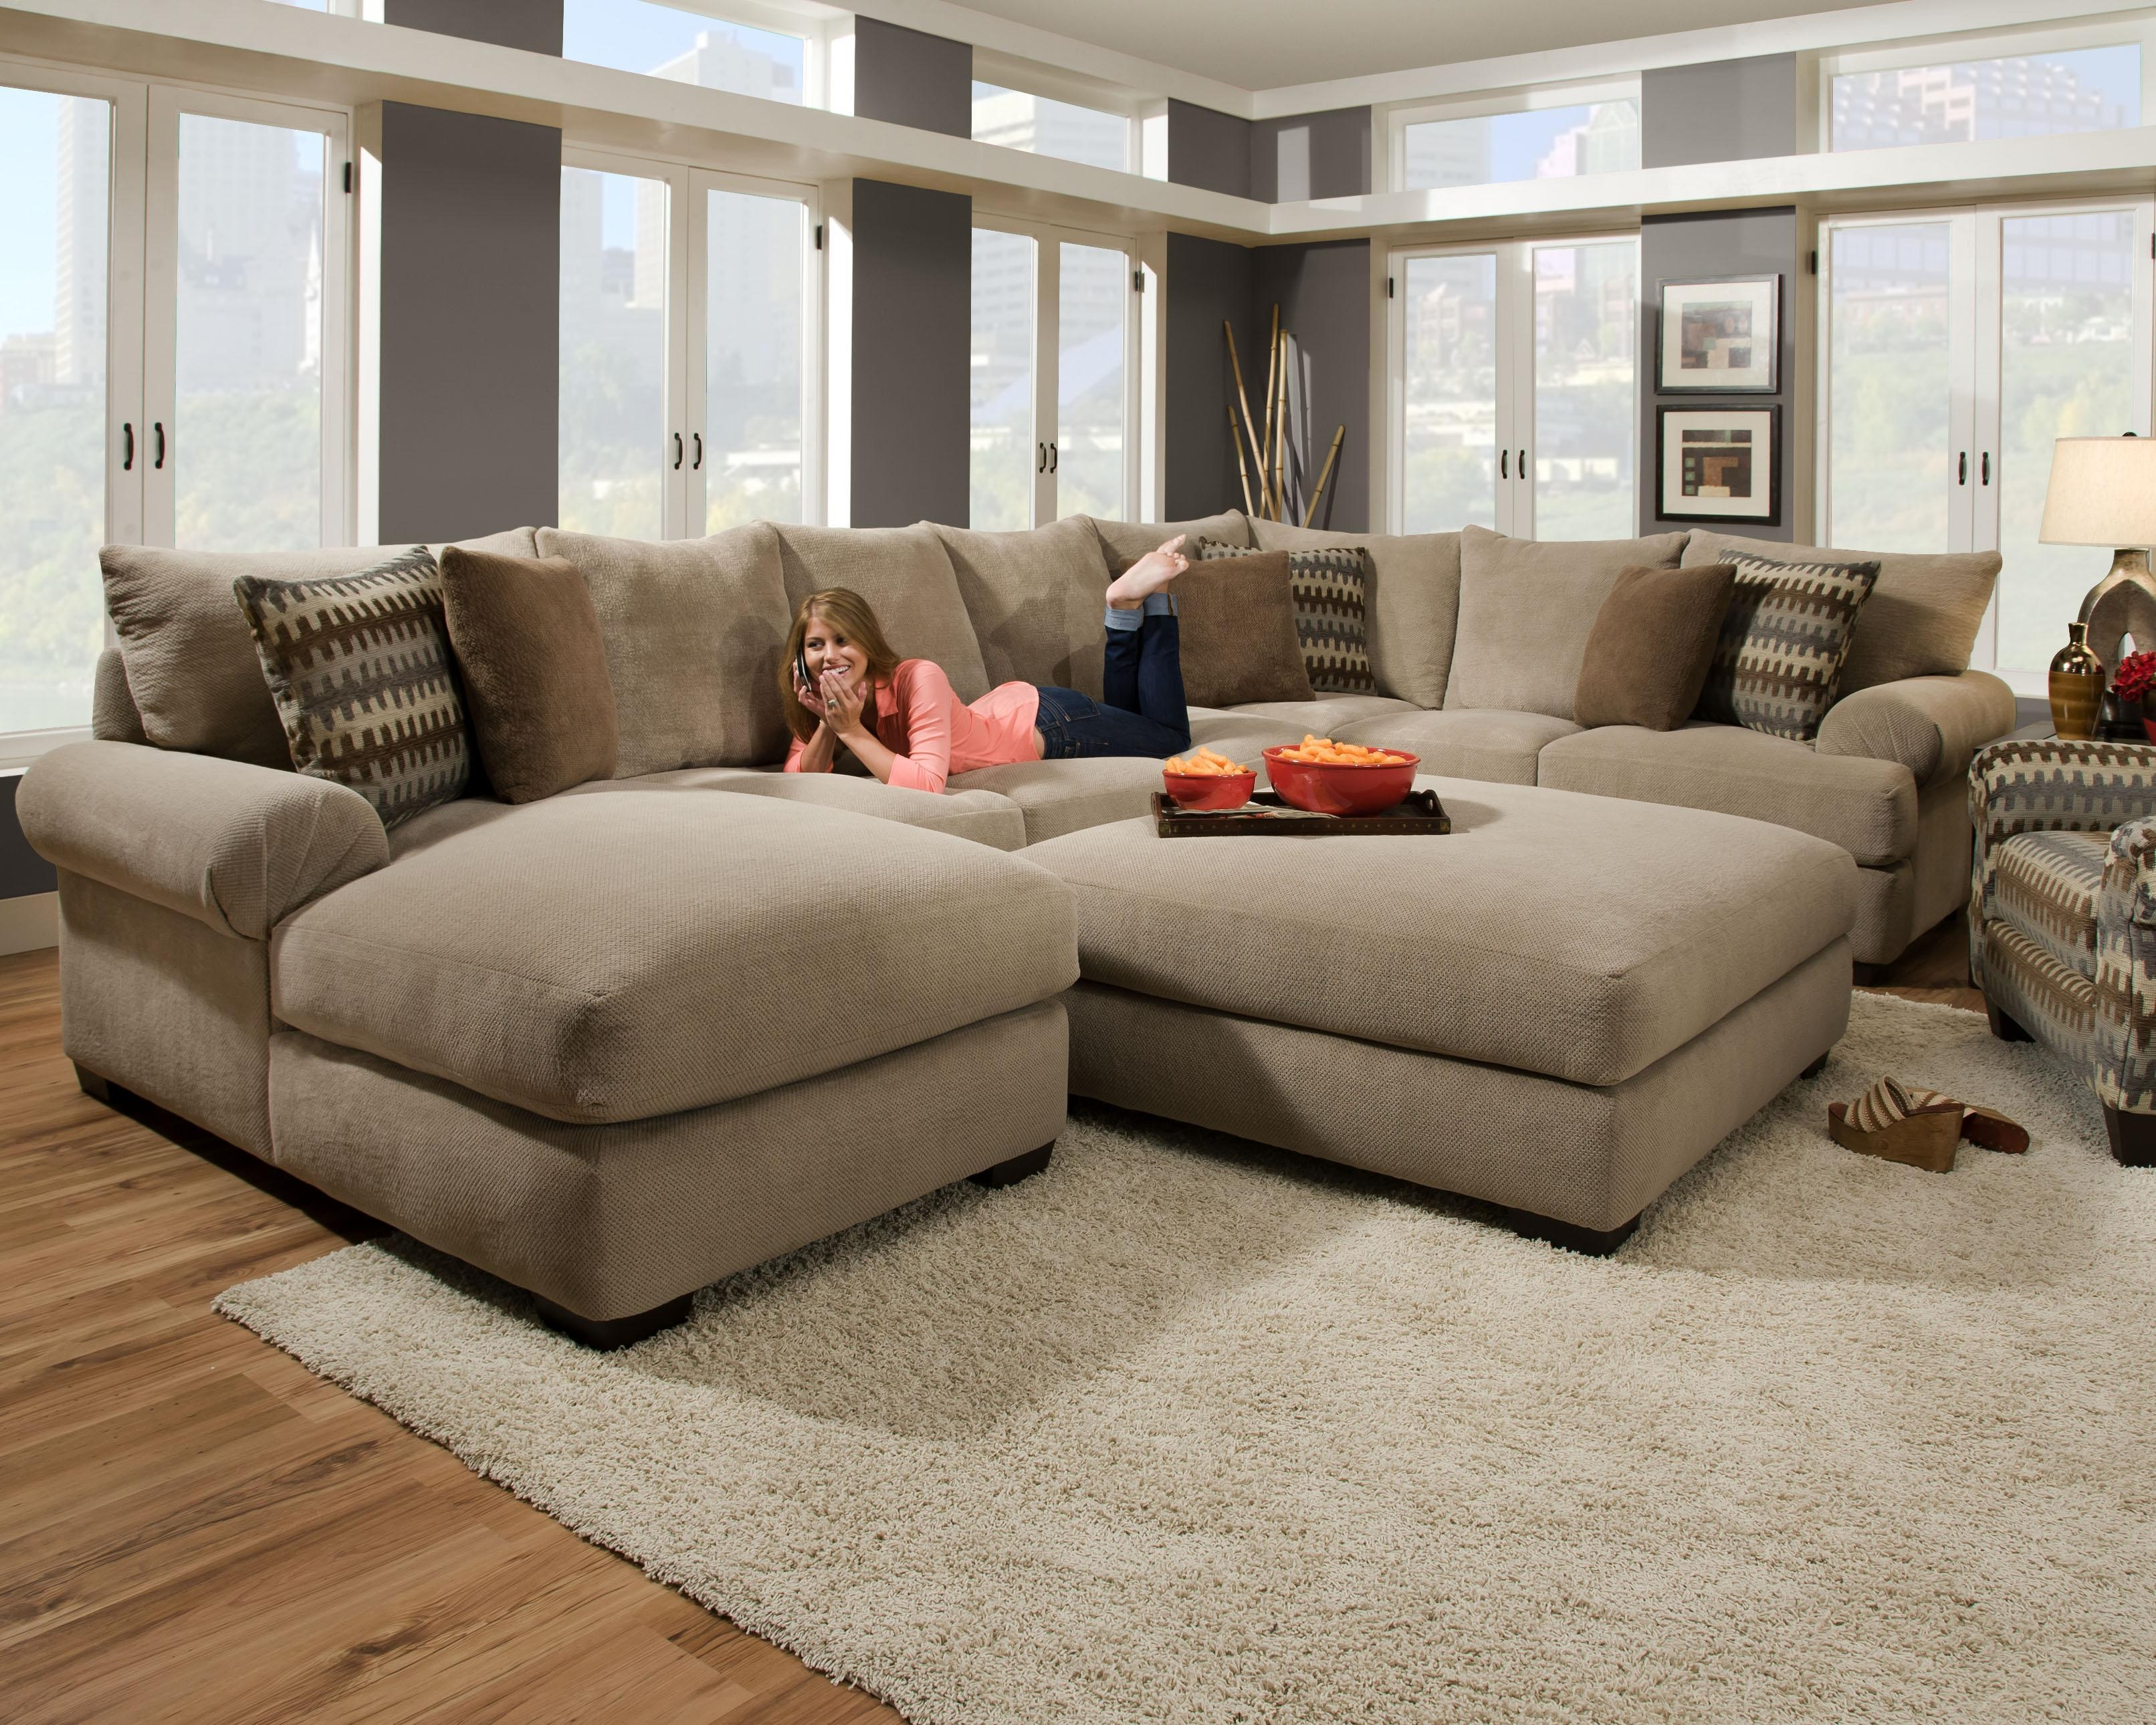 Featured Image of Comfy Sectional Sofa